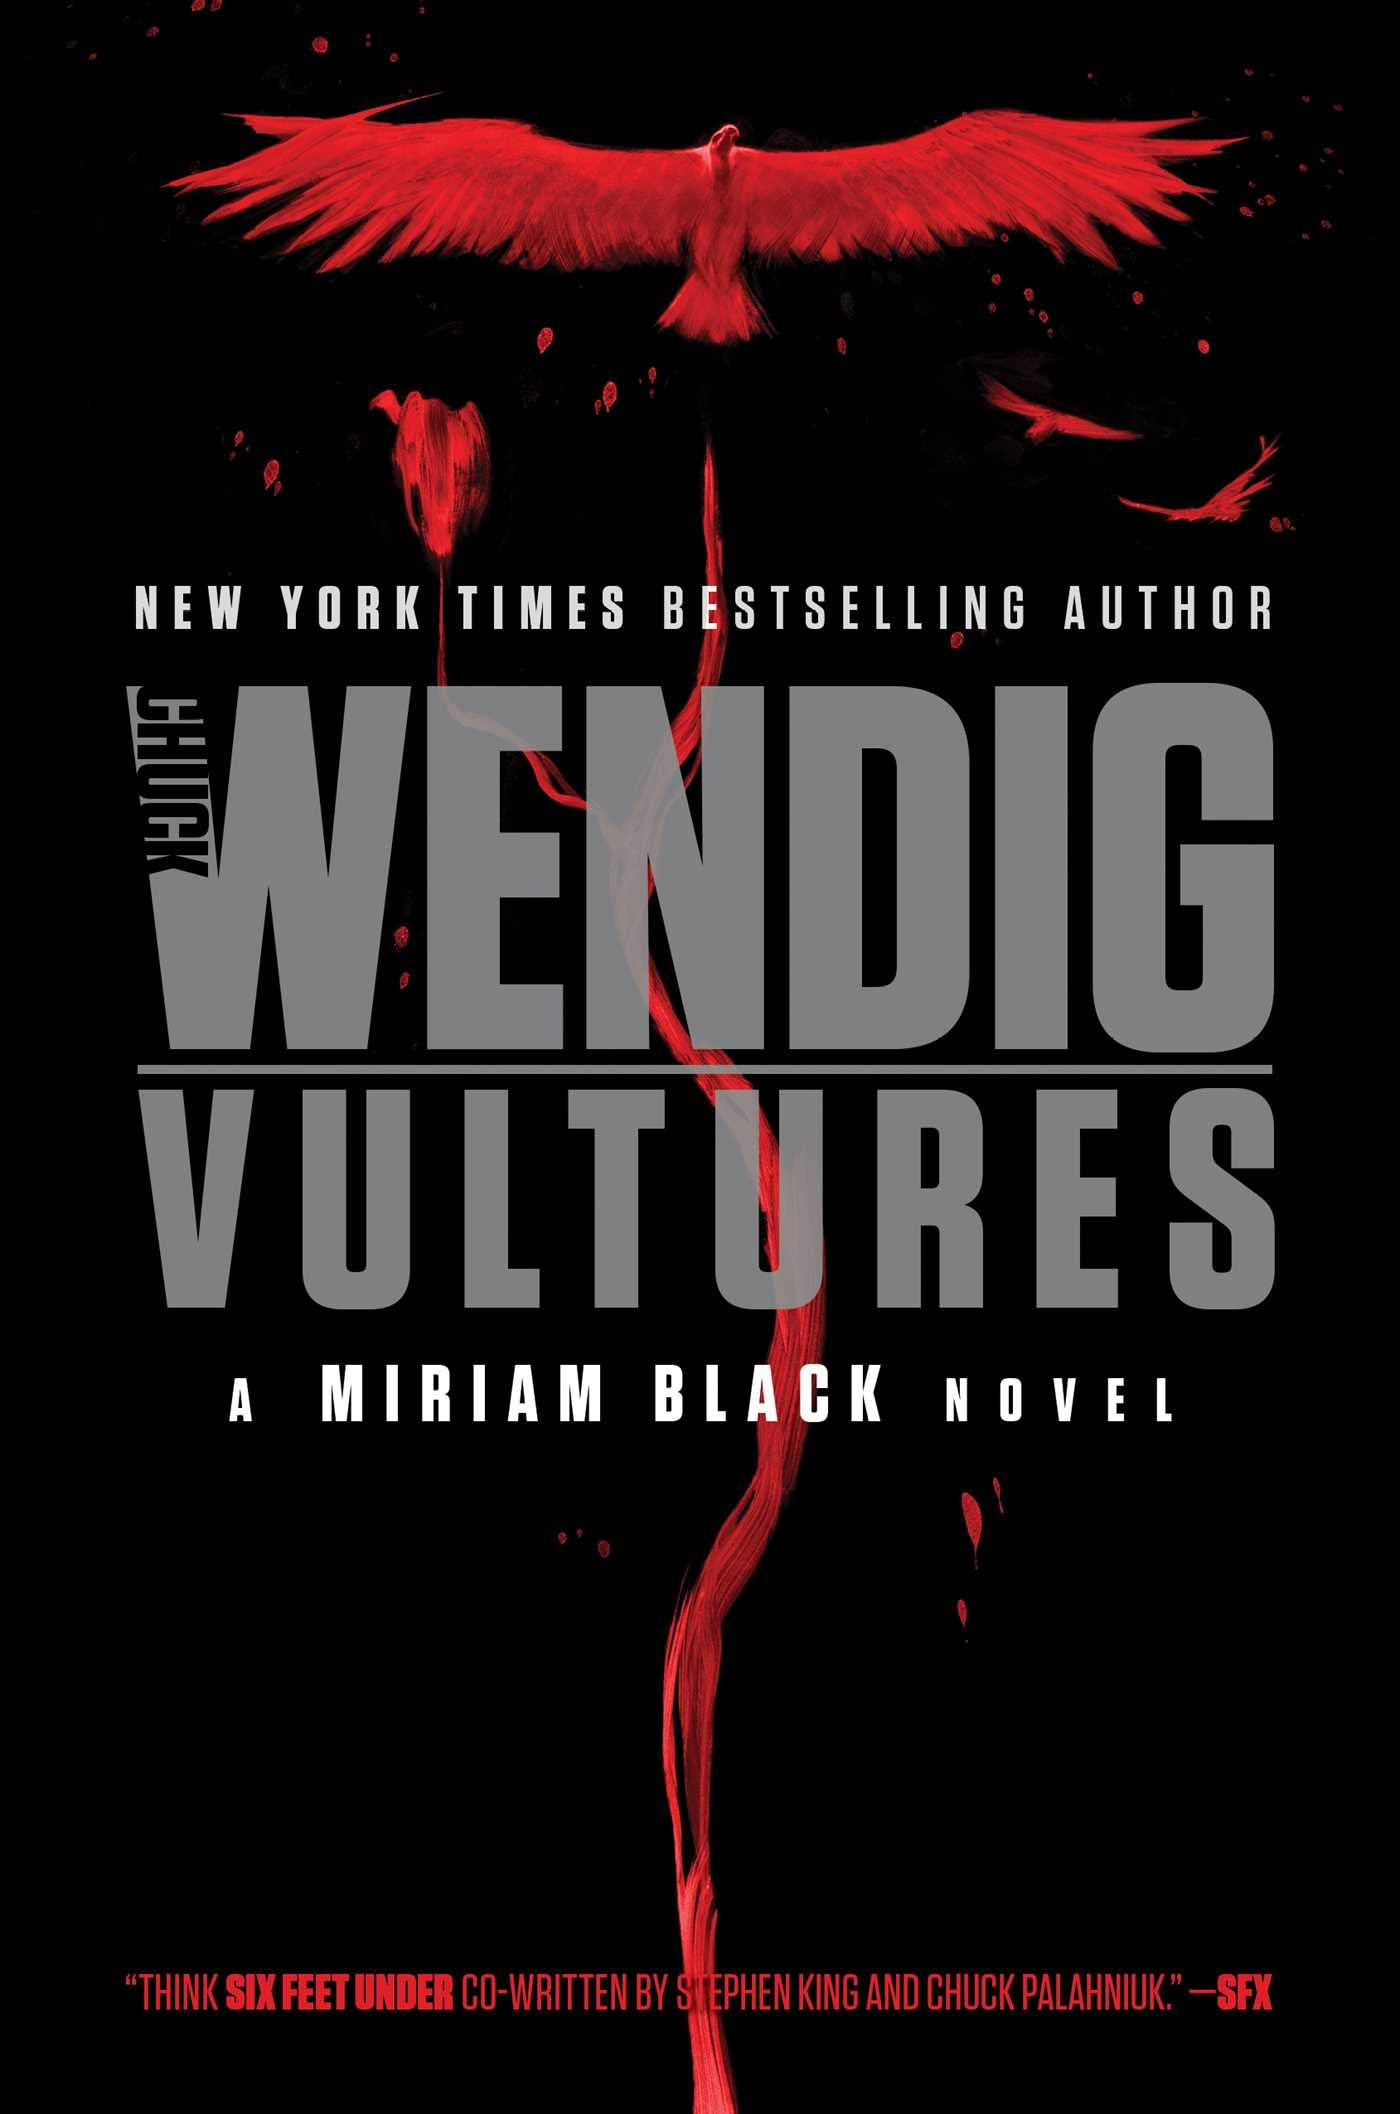 Chuck Wendig sends Miriam Black's tale out in style.